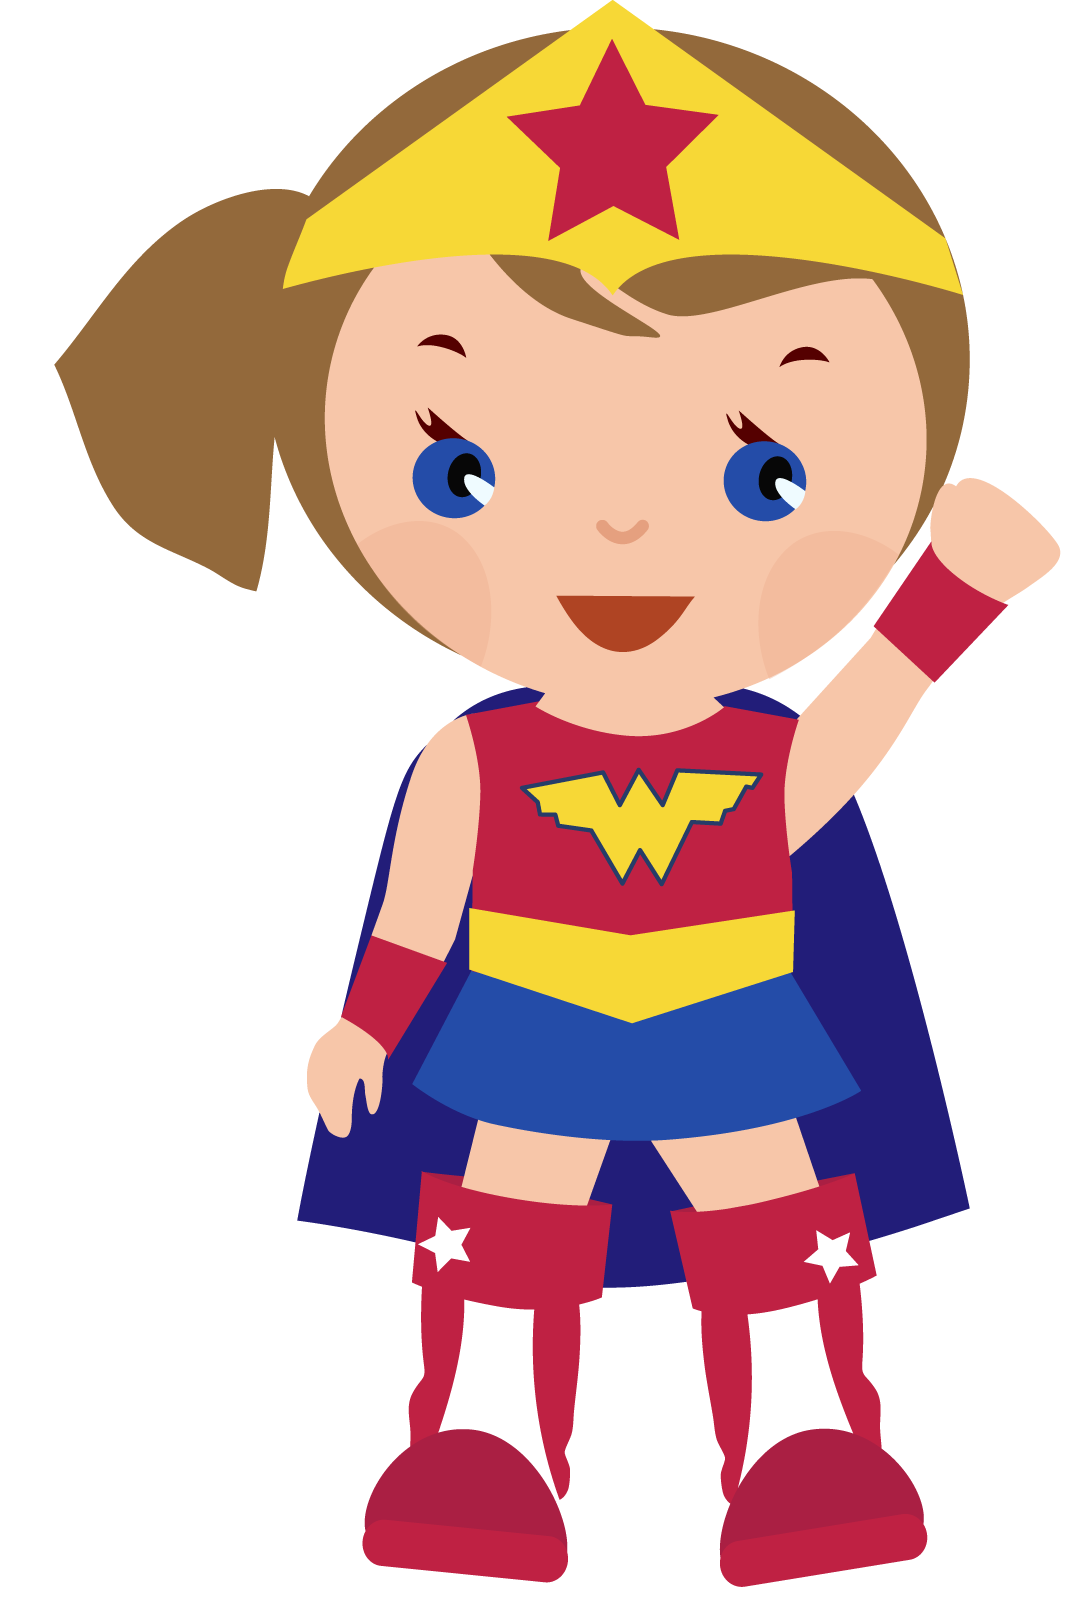 Artistic woman clipart vector royalty free library free superhero clipart | Fonts/Clipart freebies | Pinterest ... vector royalty free library